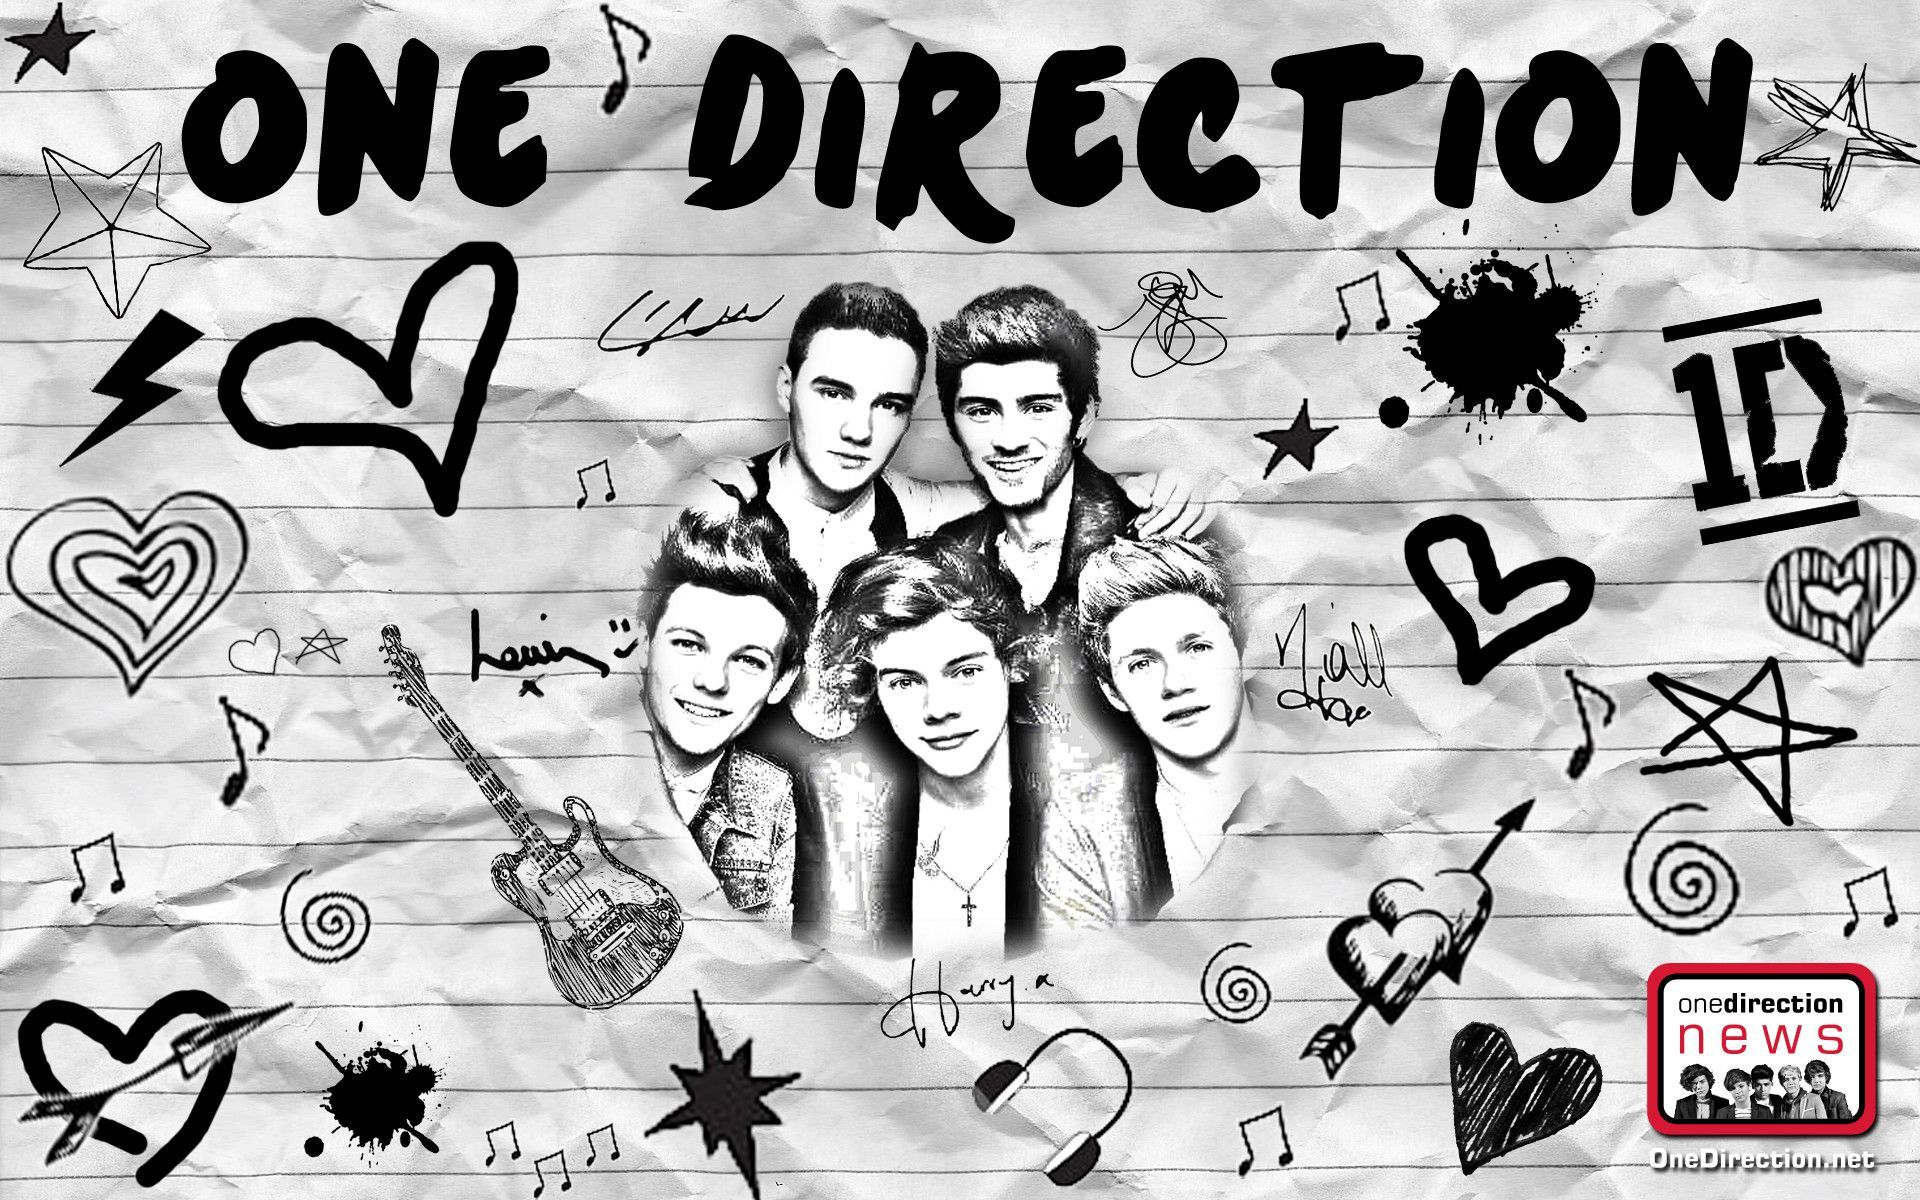 One Direction Wallpaper for Laptop (64+ images) #onedirectionbackground One Direction Wallpaper for Laptop (64+ images) #onedirection2014